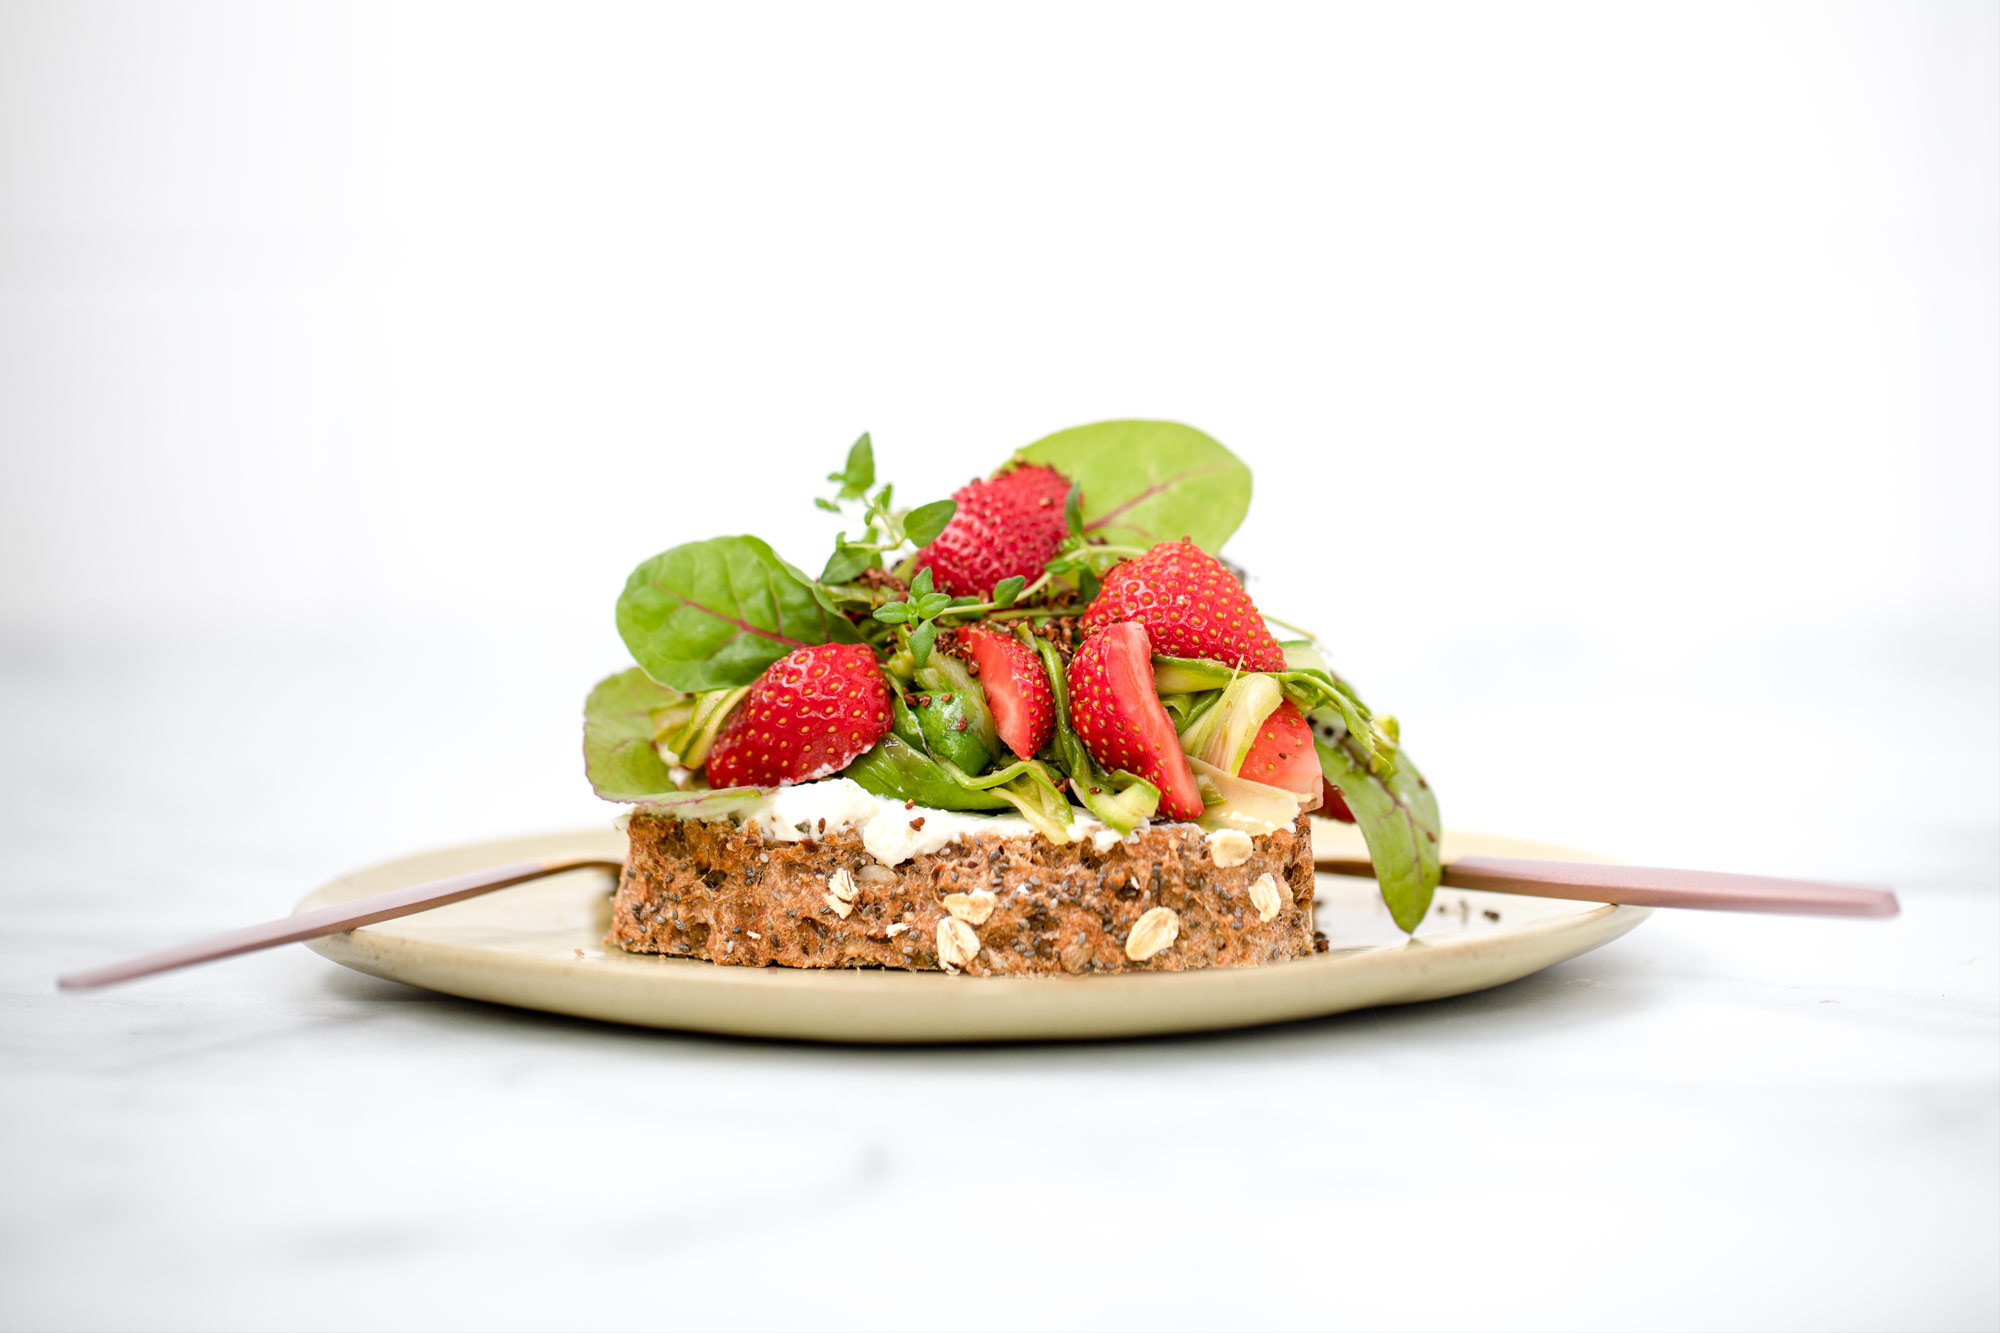 Roasted Asparagus-Strawberry Bread by Bakd&Raw